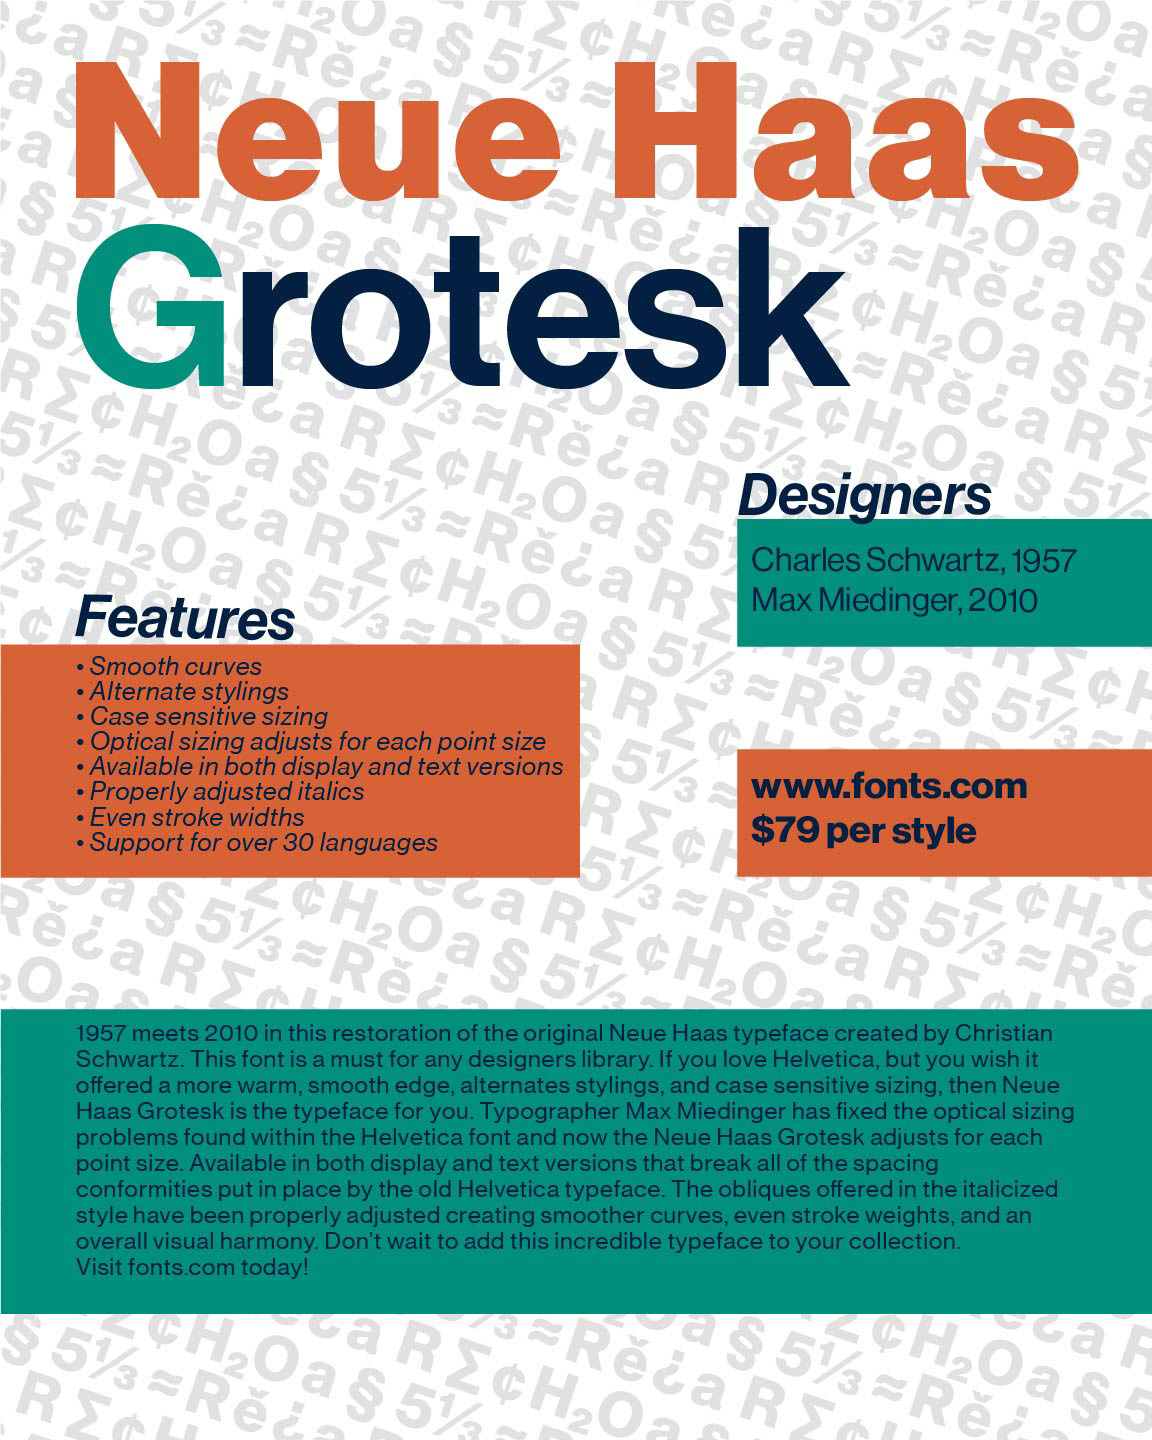 What's New with Neue Haas Grotesk on Behance